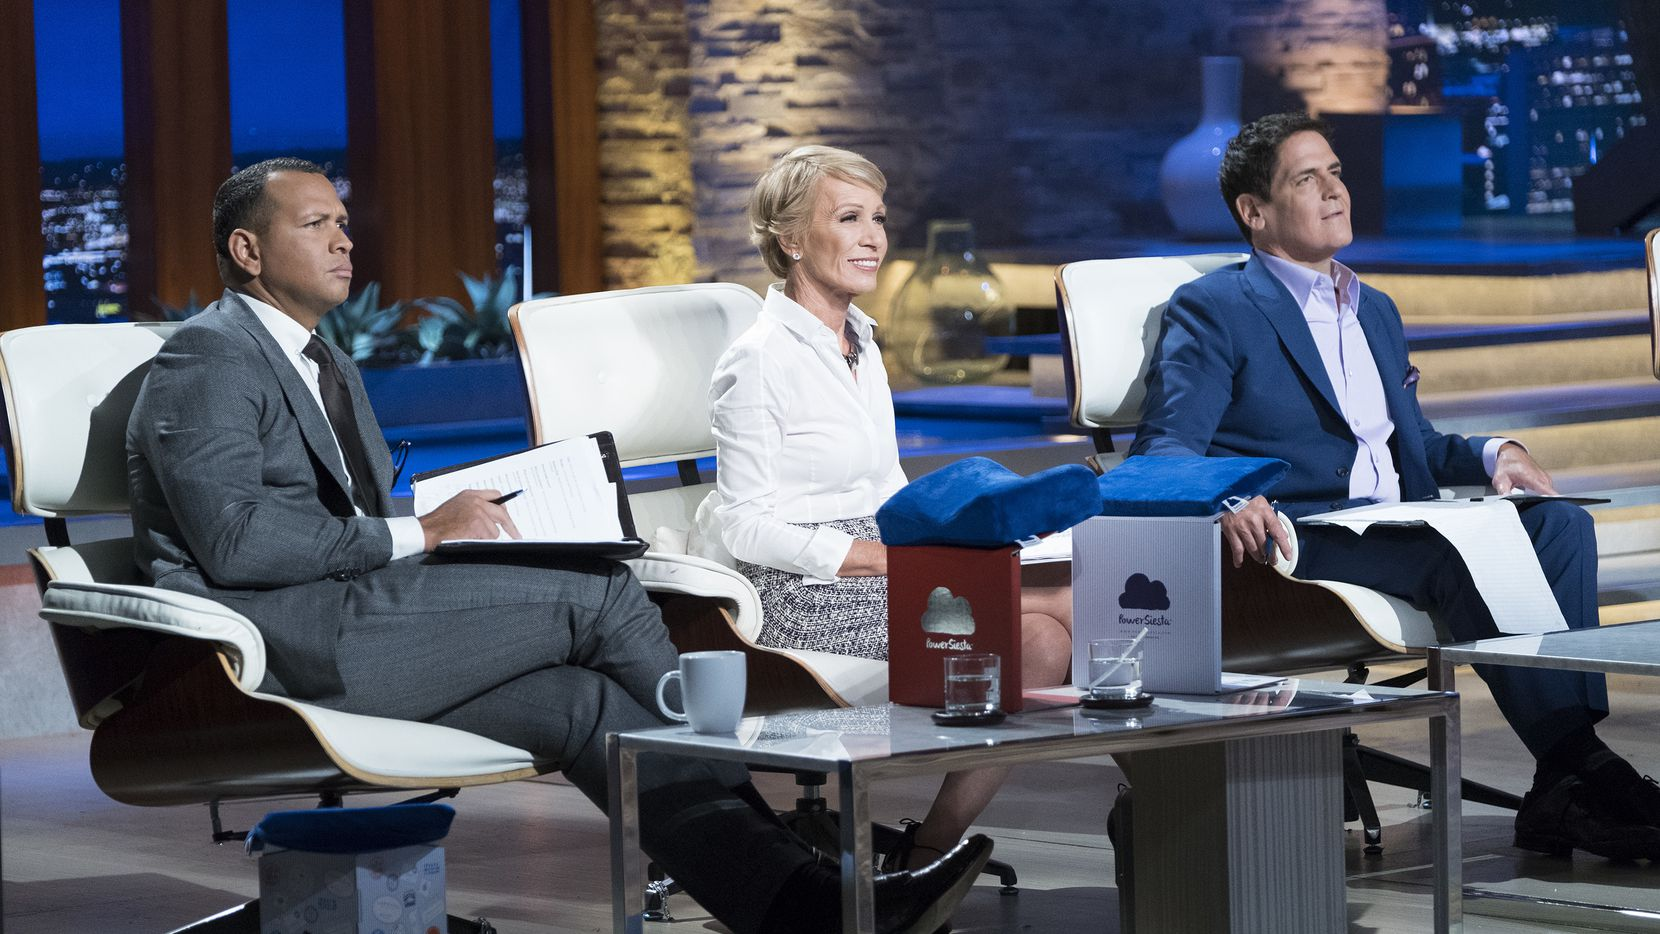 """Shark Tank"" investors Alex Rodriguez, Barbara Corcoran and Mark Cuban hedge their bets on Sunday's episode featuring the Gronkowski brothers."